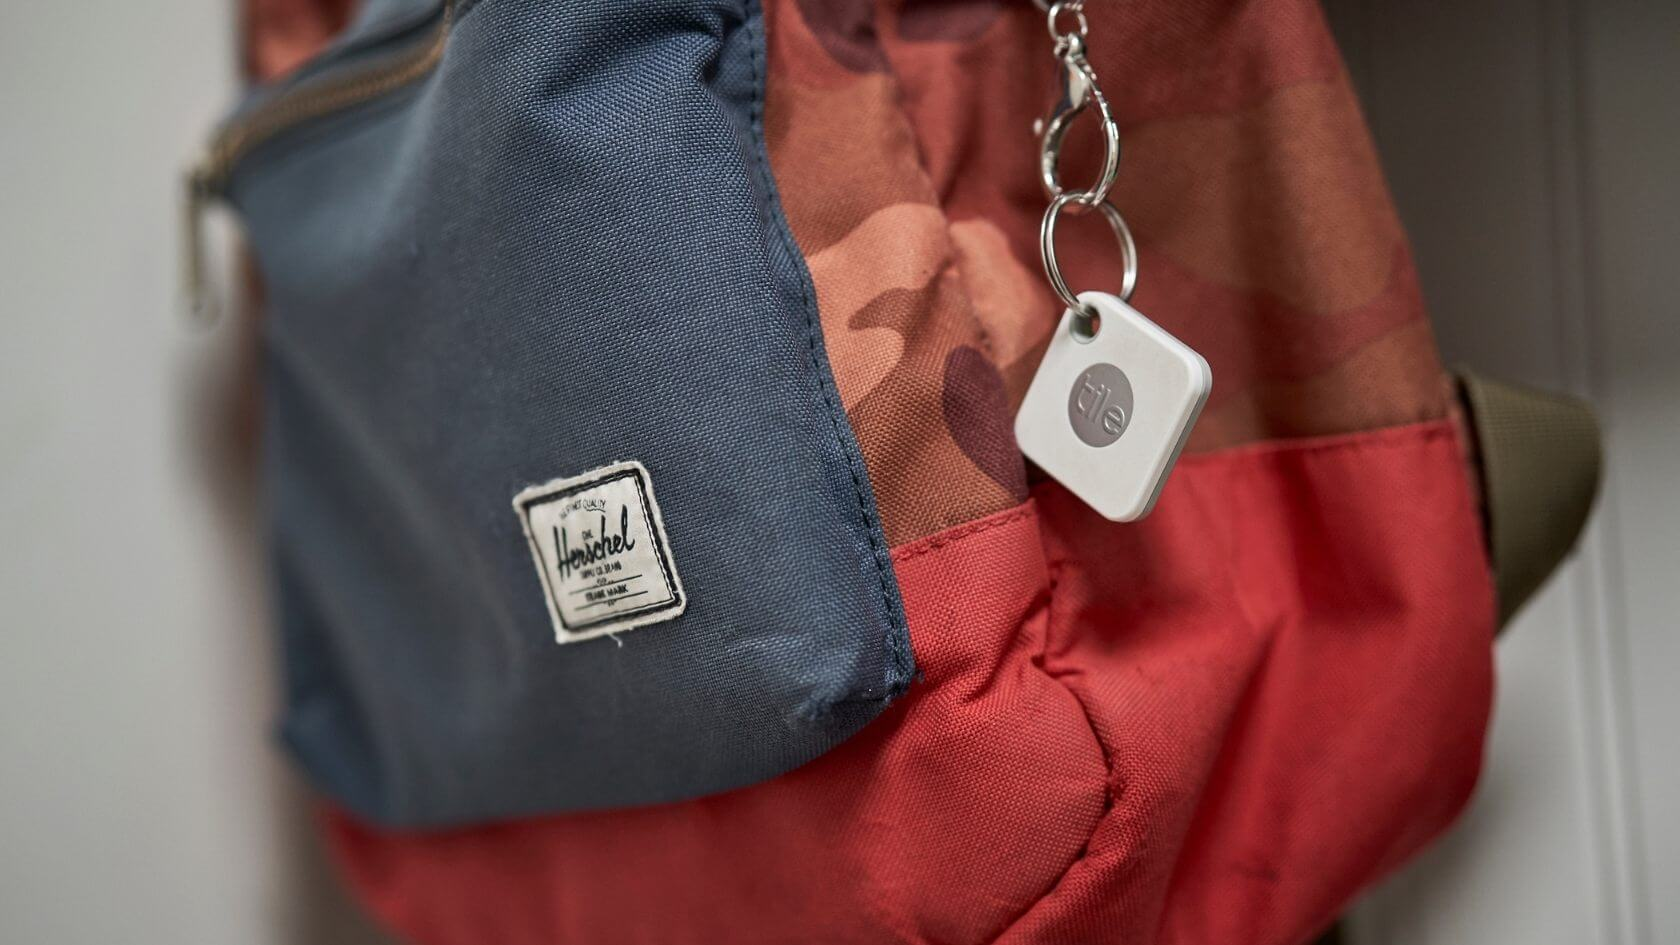 Tile Mate Bluetooth Tracker Finds Your Backpack